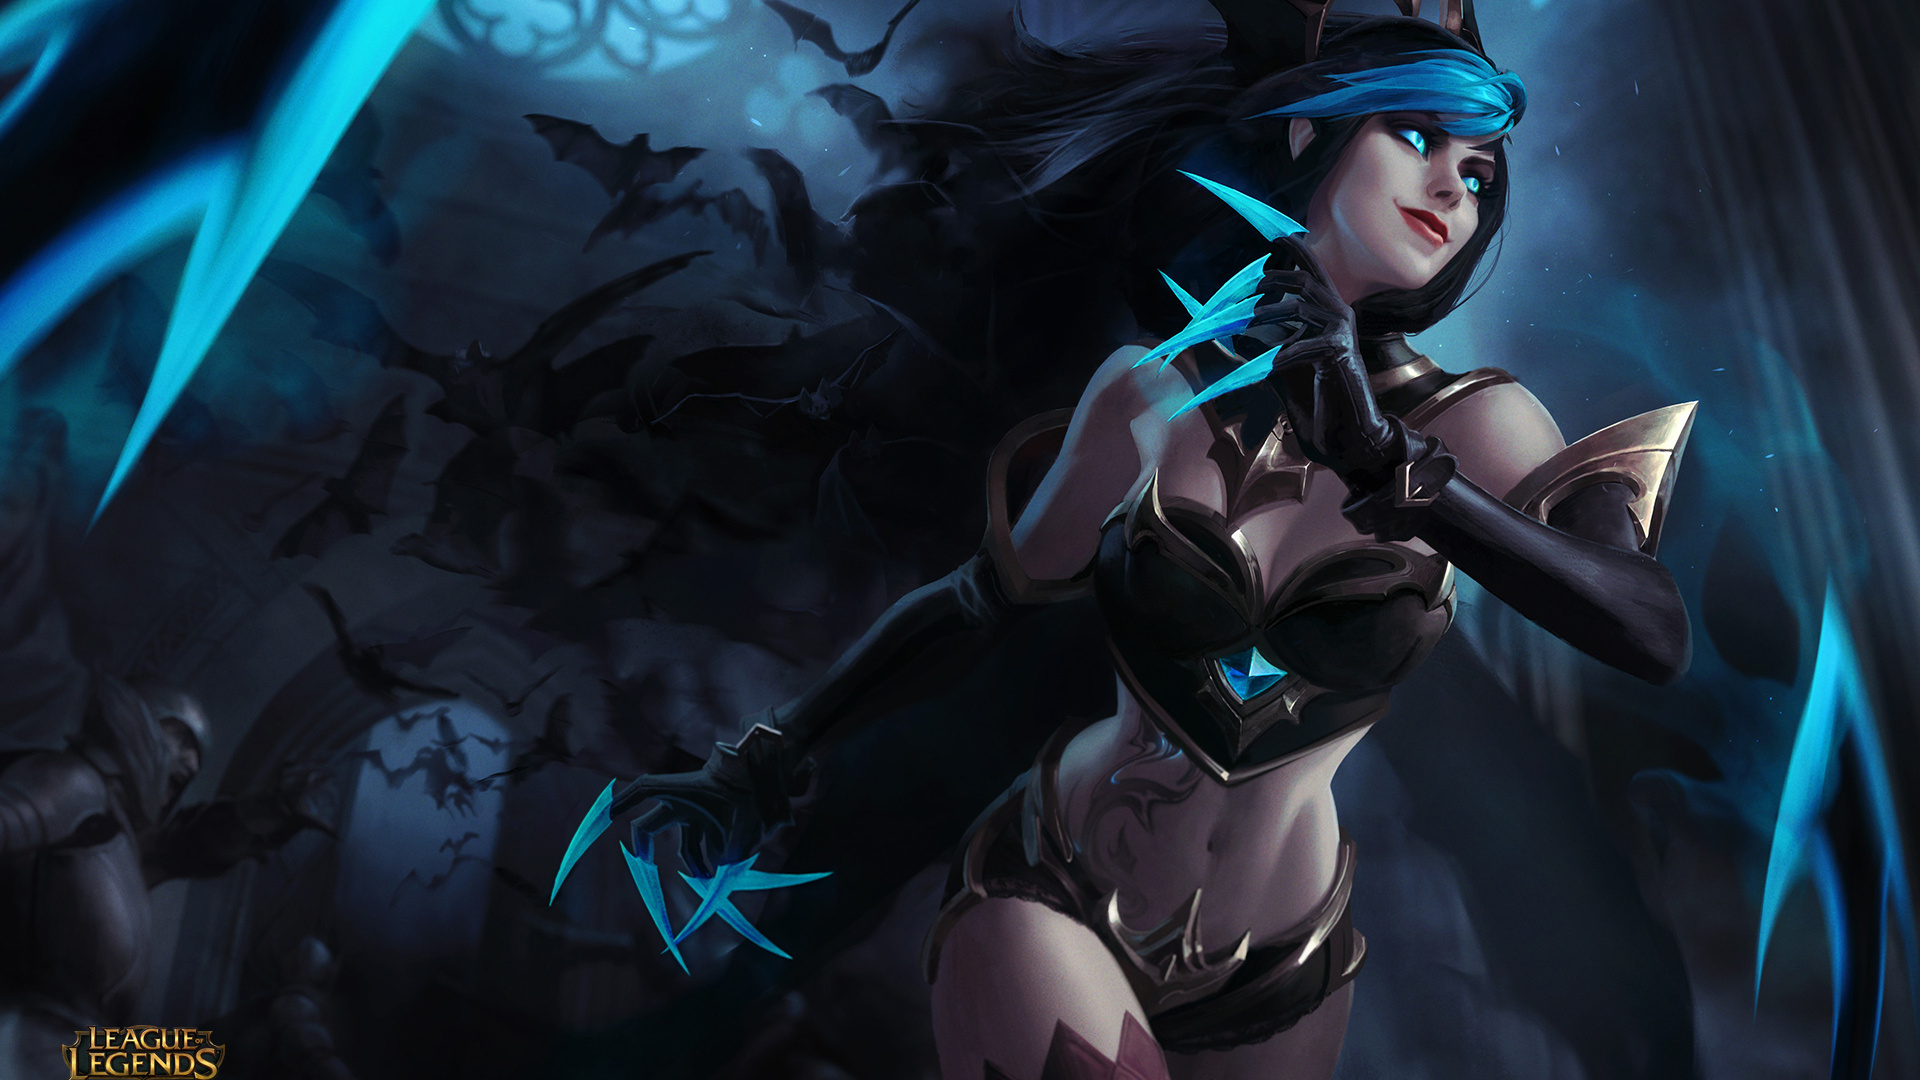 1920x1080 evelynn league of legends laptop full hd 1080p